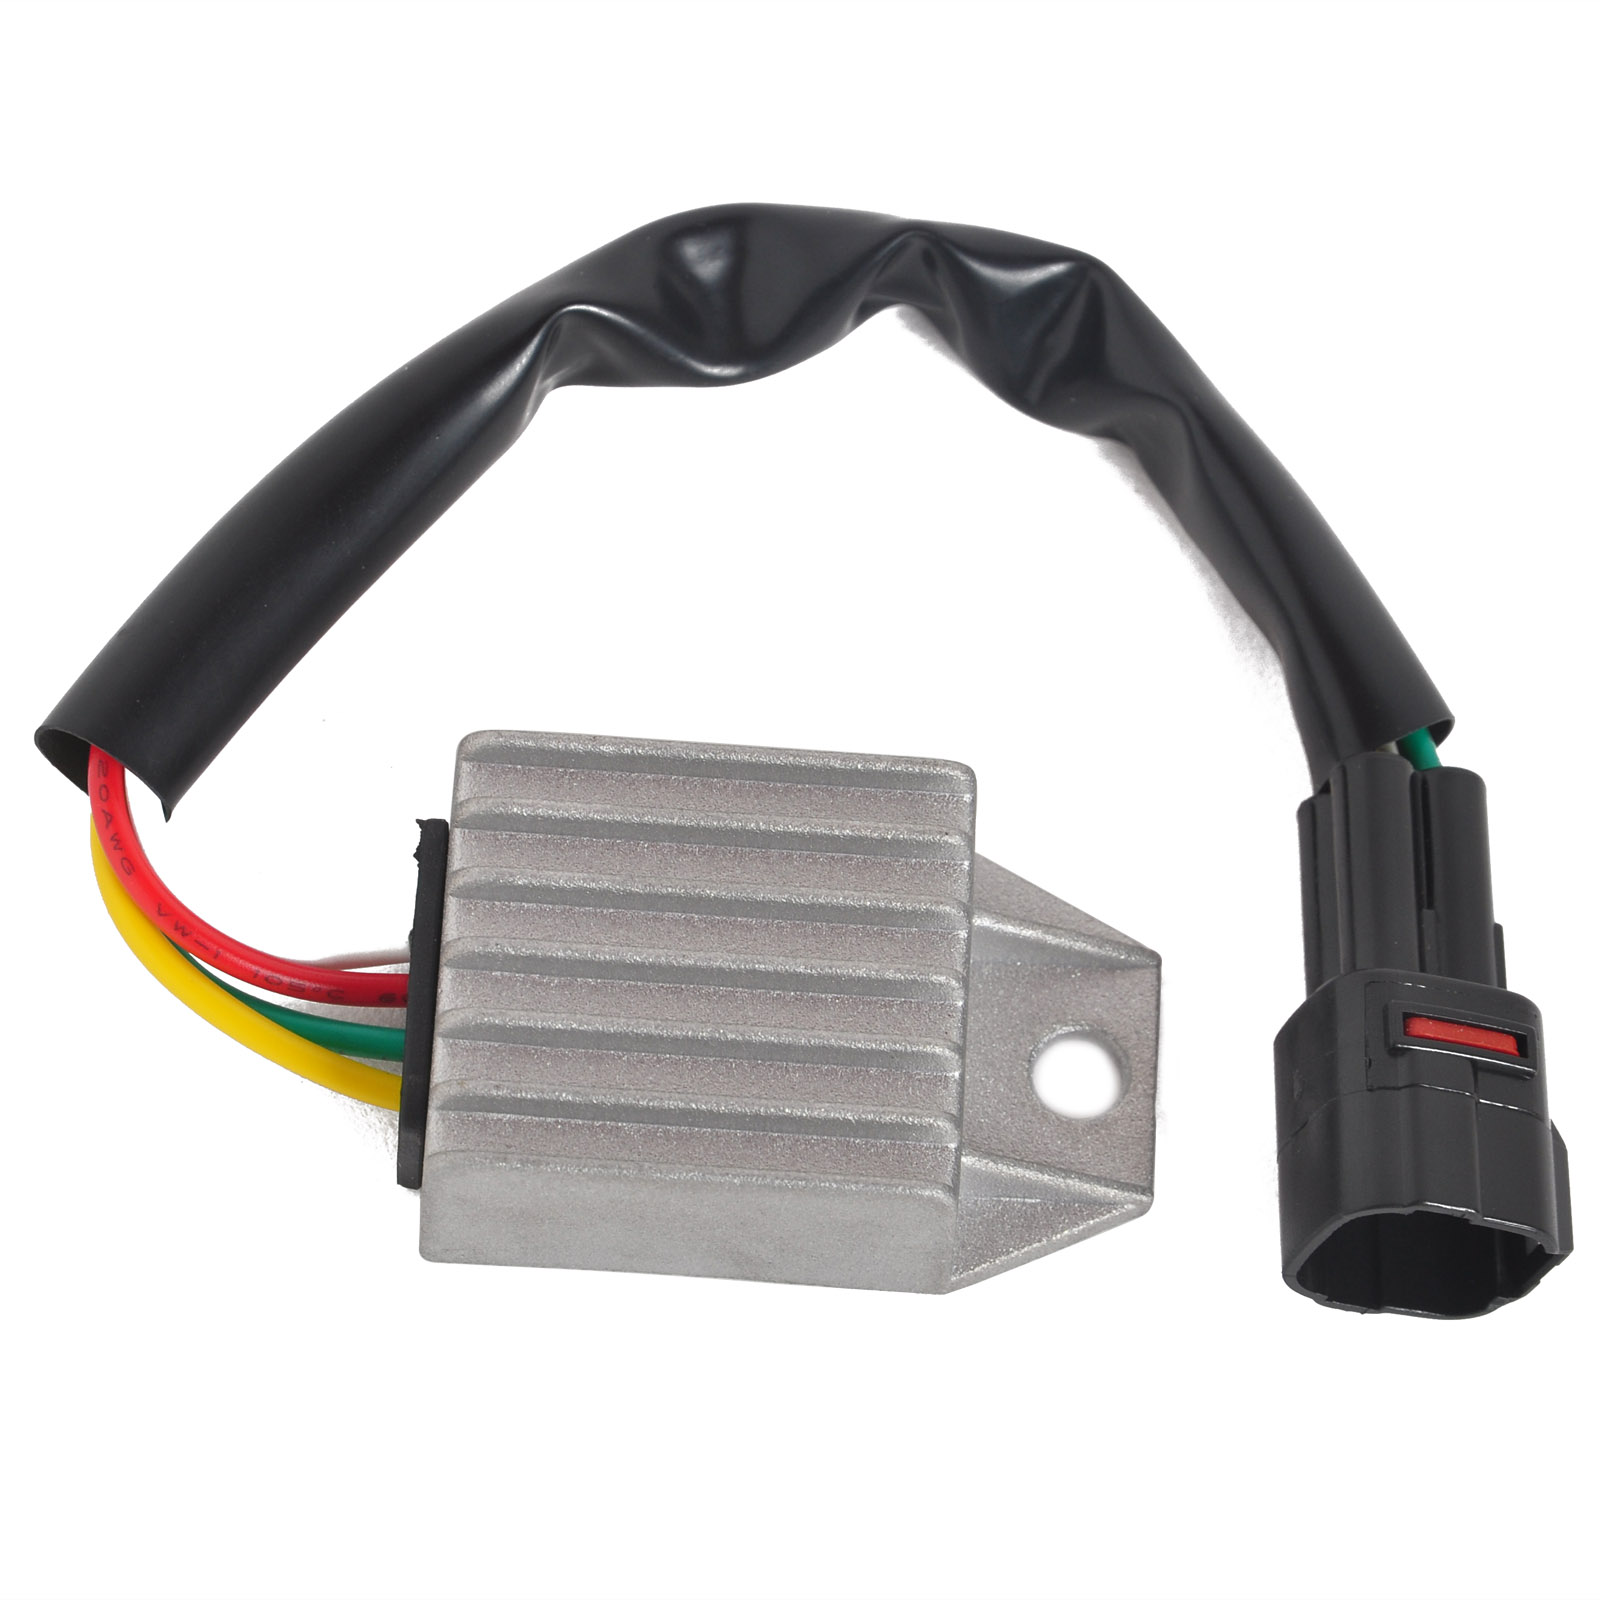 Bjmoto Motorcycle Metal Voltage Regulator Rectifier For Ktm 125 Sx 450 Exc Wiring Diagram Mayitr Aluminum 660 Smc 2004 2005